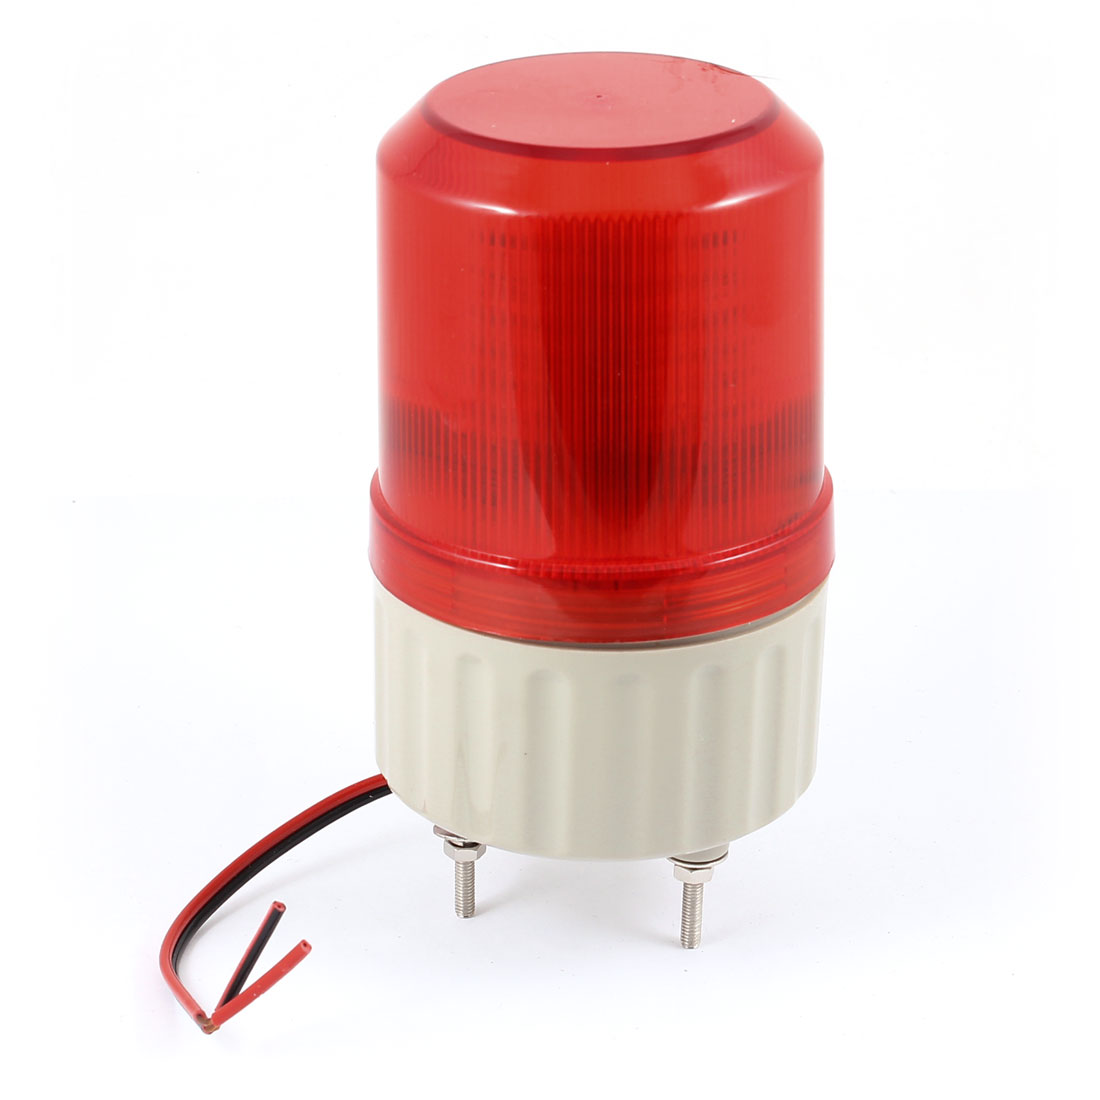 Industrial Signal Tower 30 Leds Red Flashing Rotary Warning Lamp 24VDC